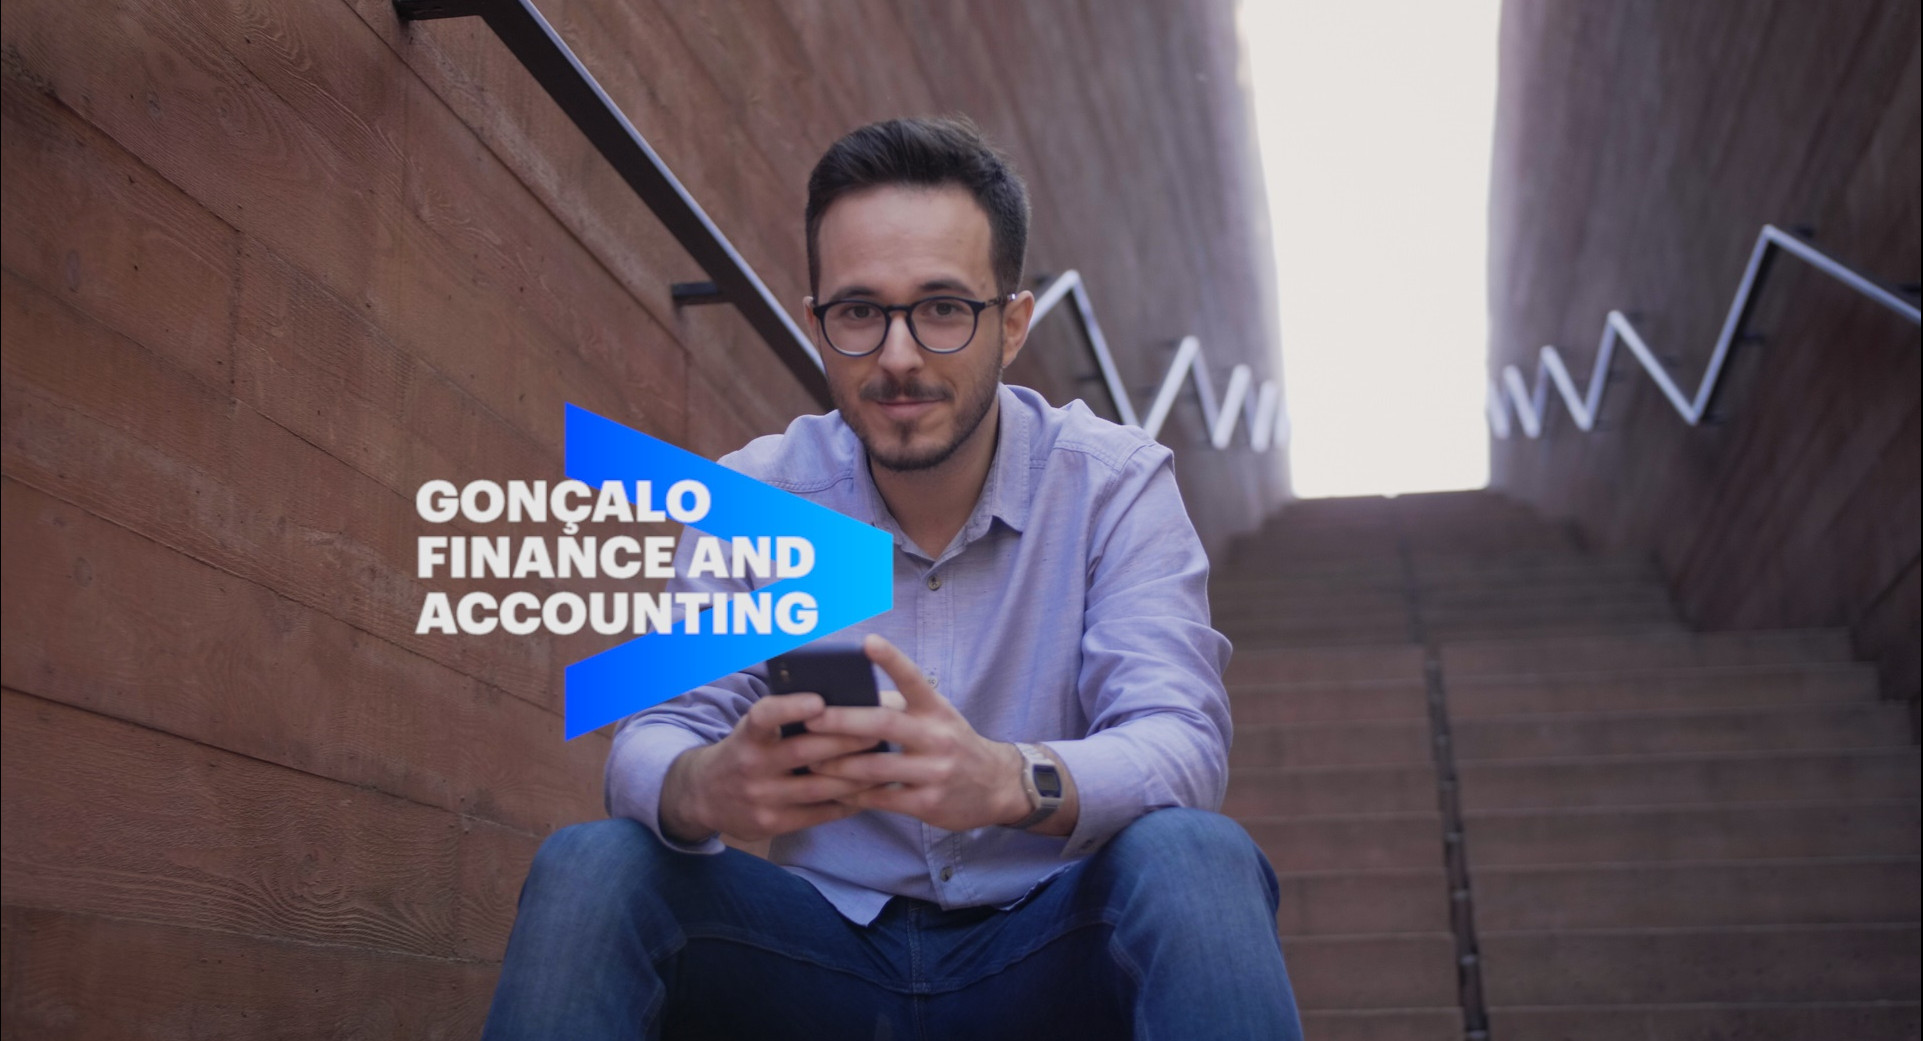 Gonçalo - Finance & Accounting, Accenture Operations Poland. Join us!